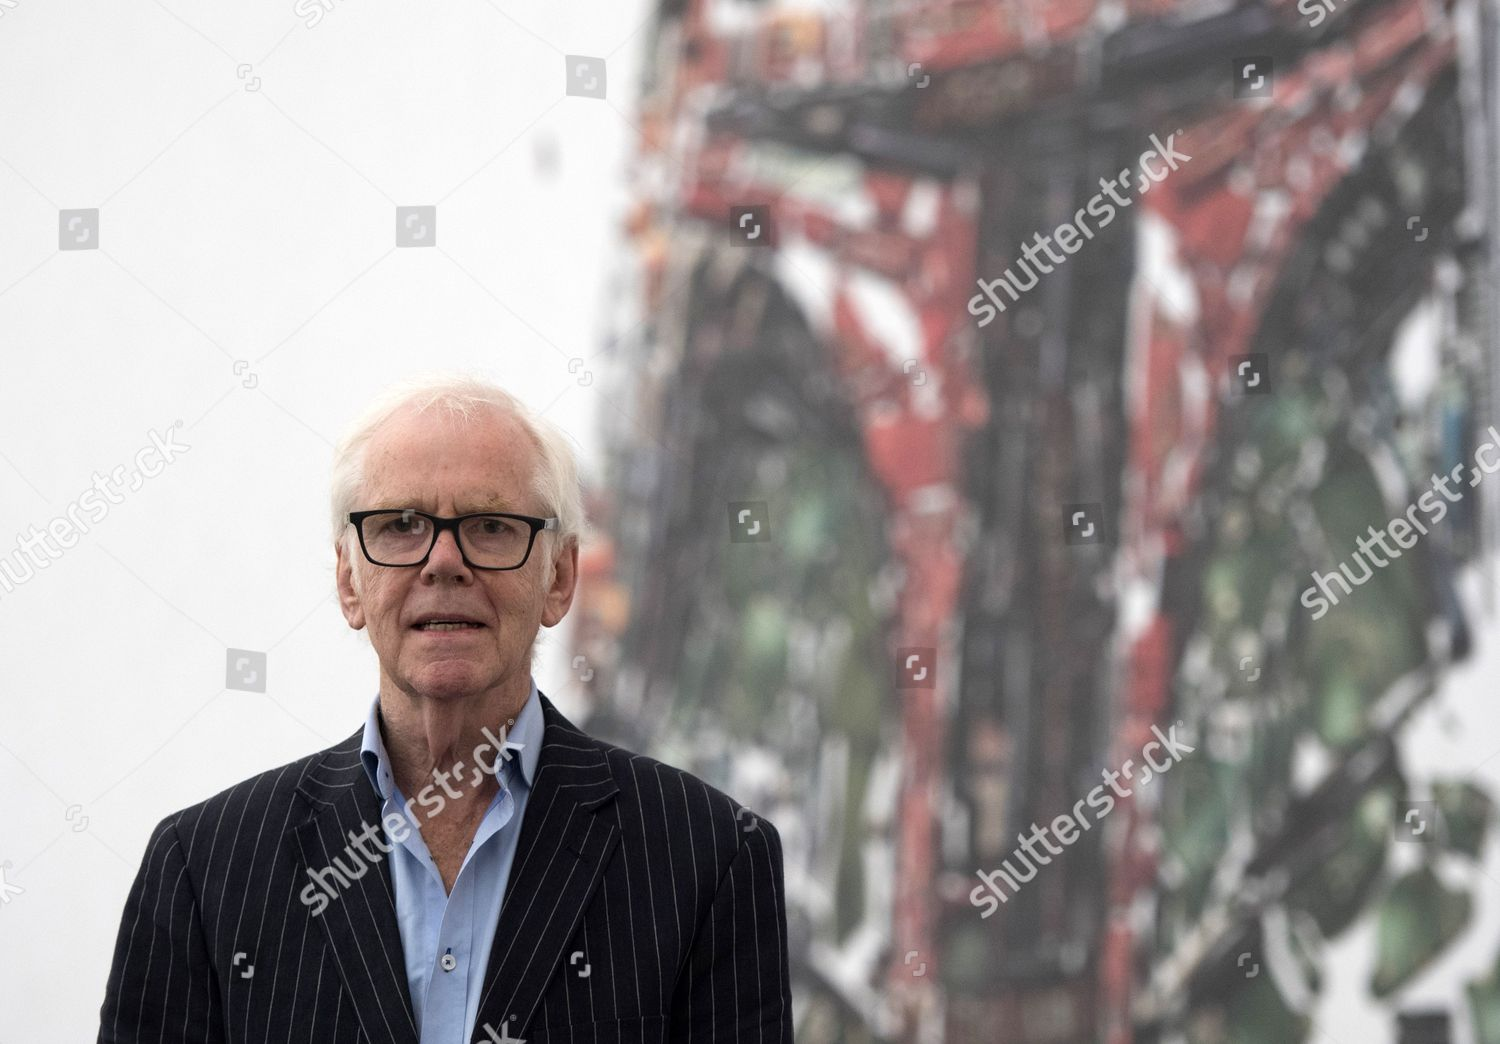 Stockfoto von Star Wars actor Jeremy Bulloch attends photocall at Star Wars Identities, London, United Kingdom - 26 Jul 2017